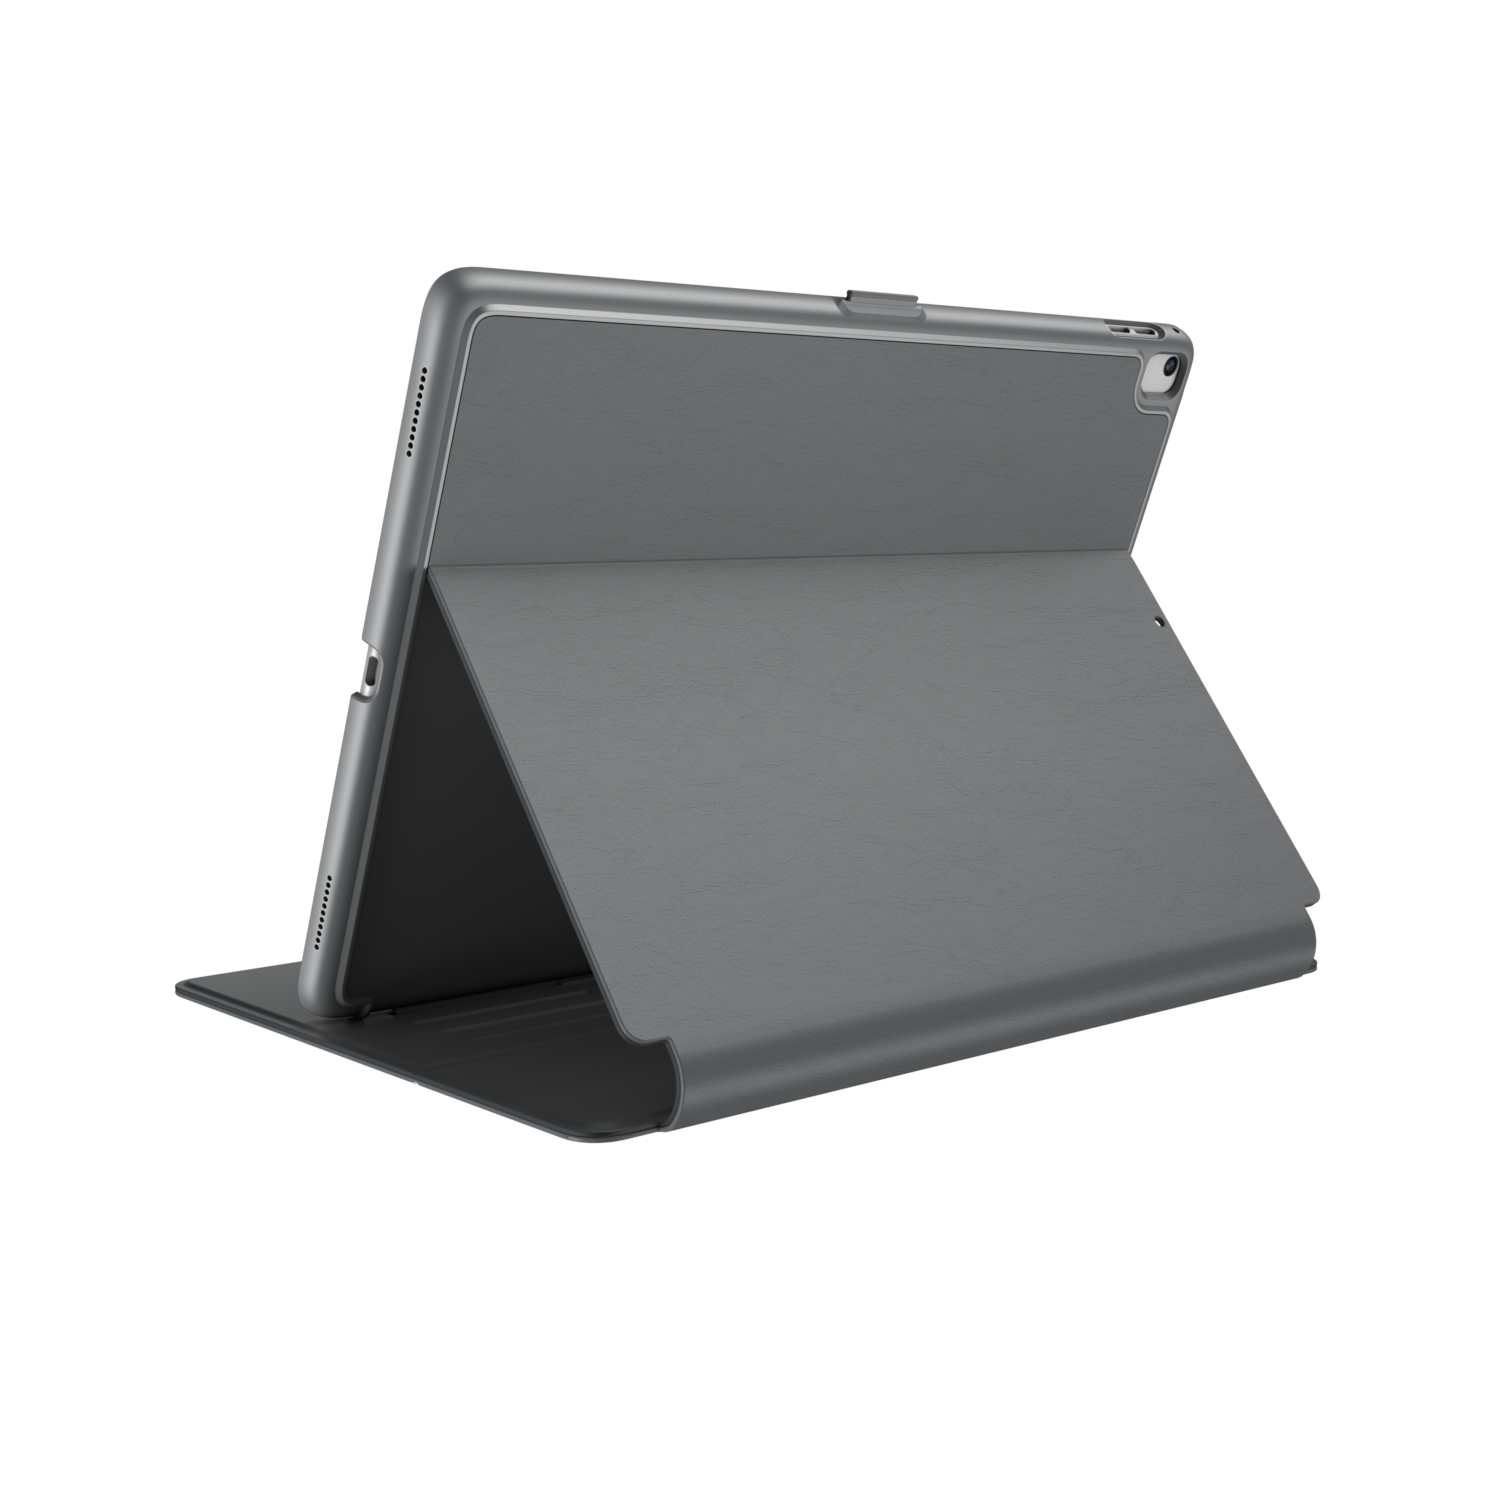 Compare retail prices of Speck Balance FOLIO 9.7 inch iPad Cases 2017 Stormy Grey/Charcoal Grey to get the best deal online